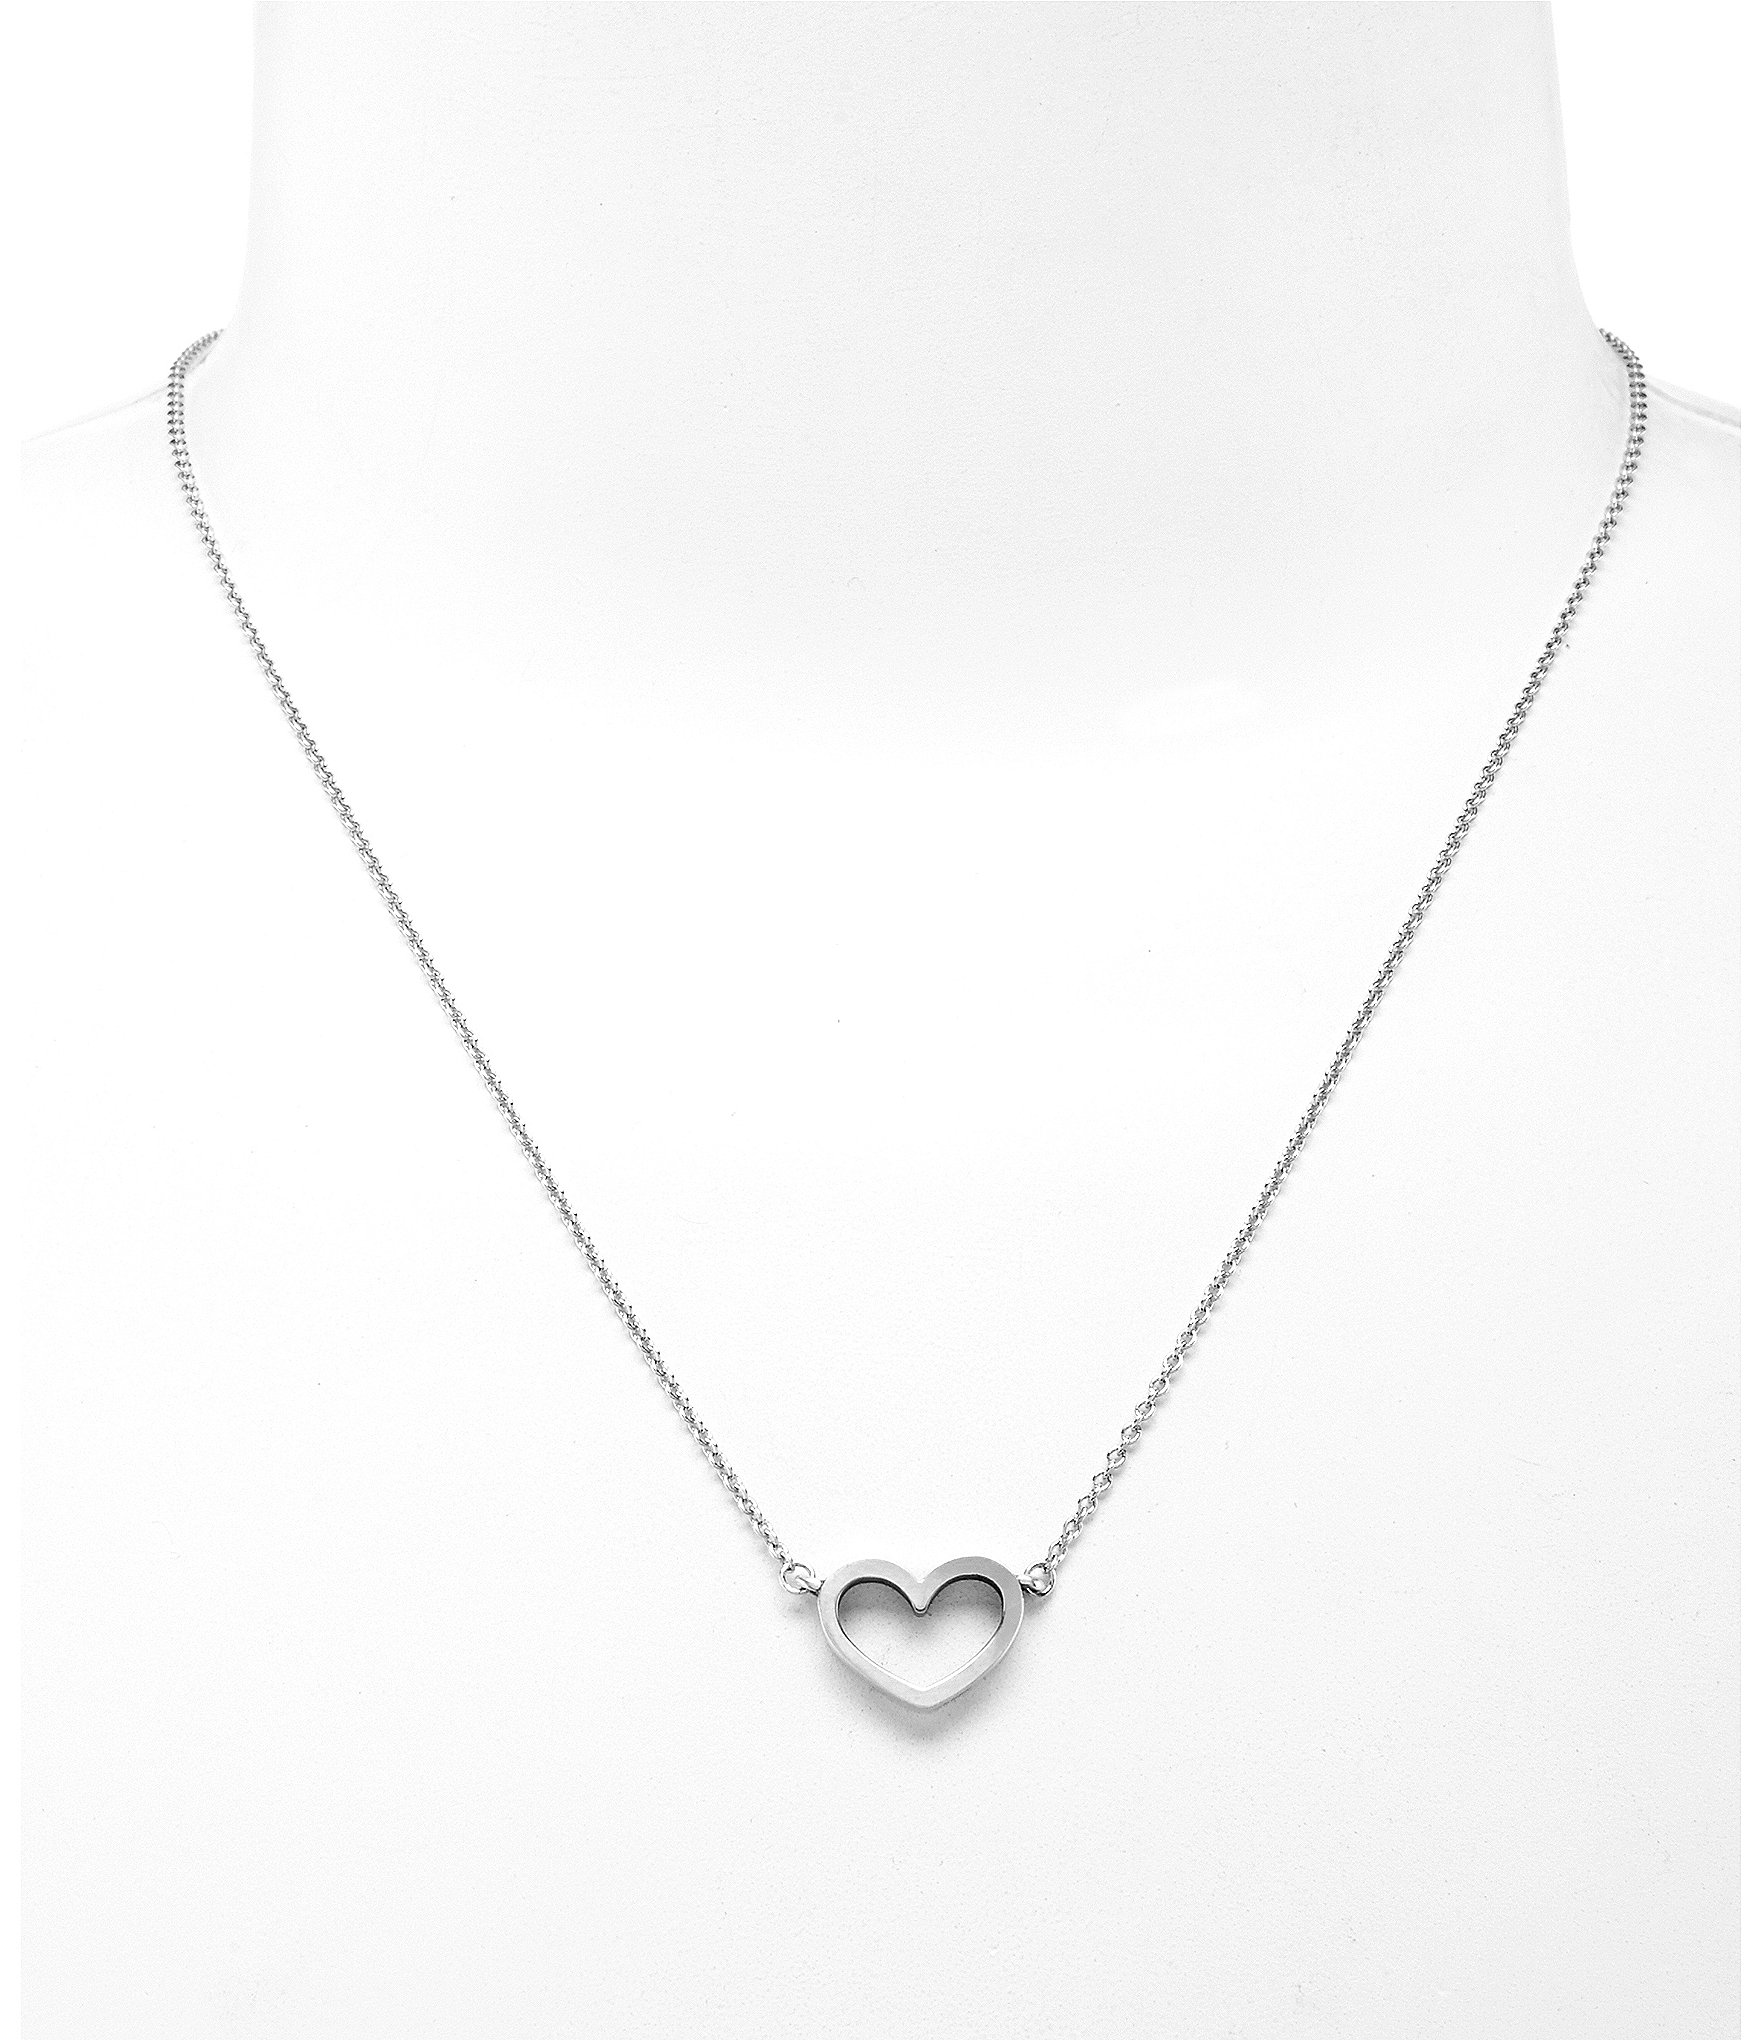 heart daniella necklace draper mini charm miniheartnecklace shop product